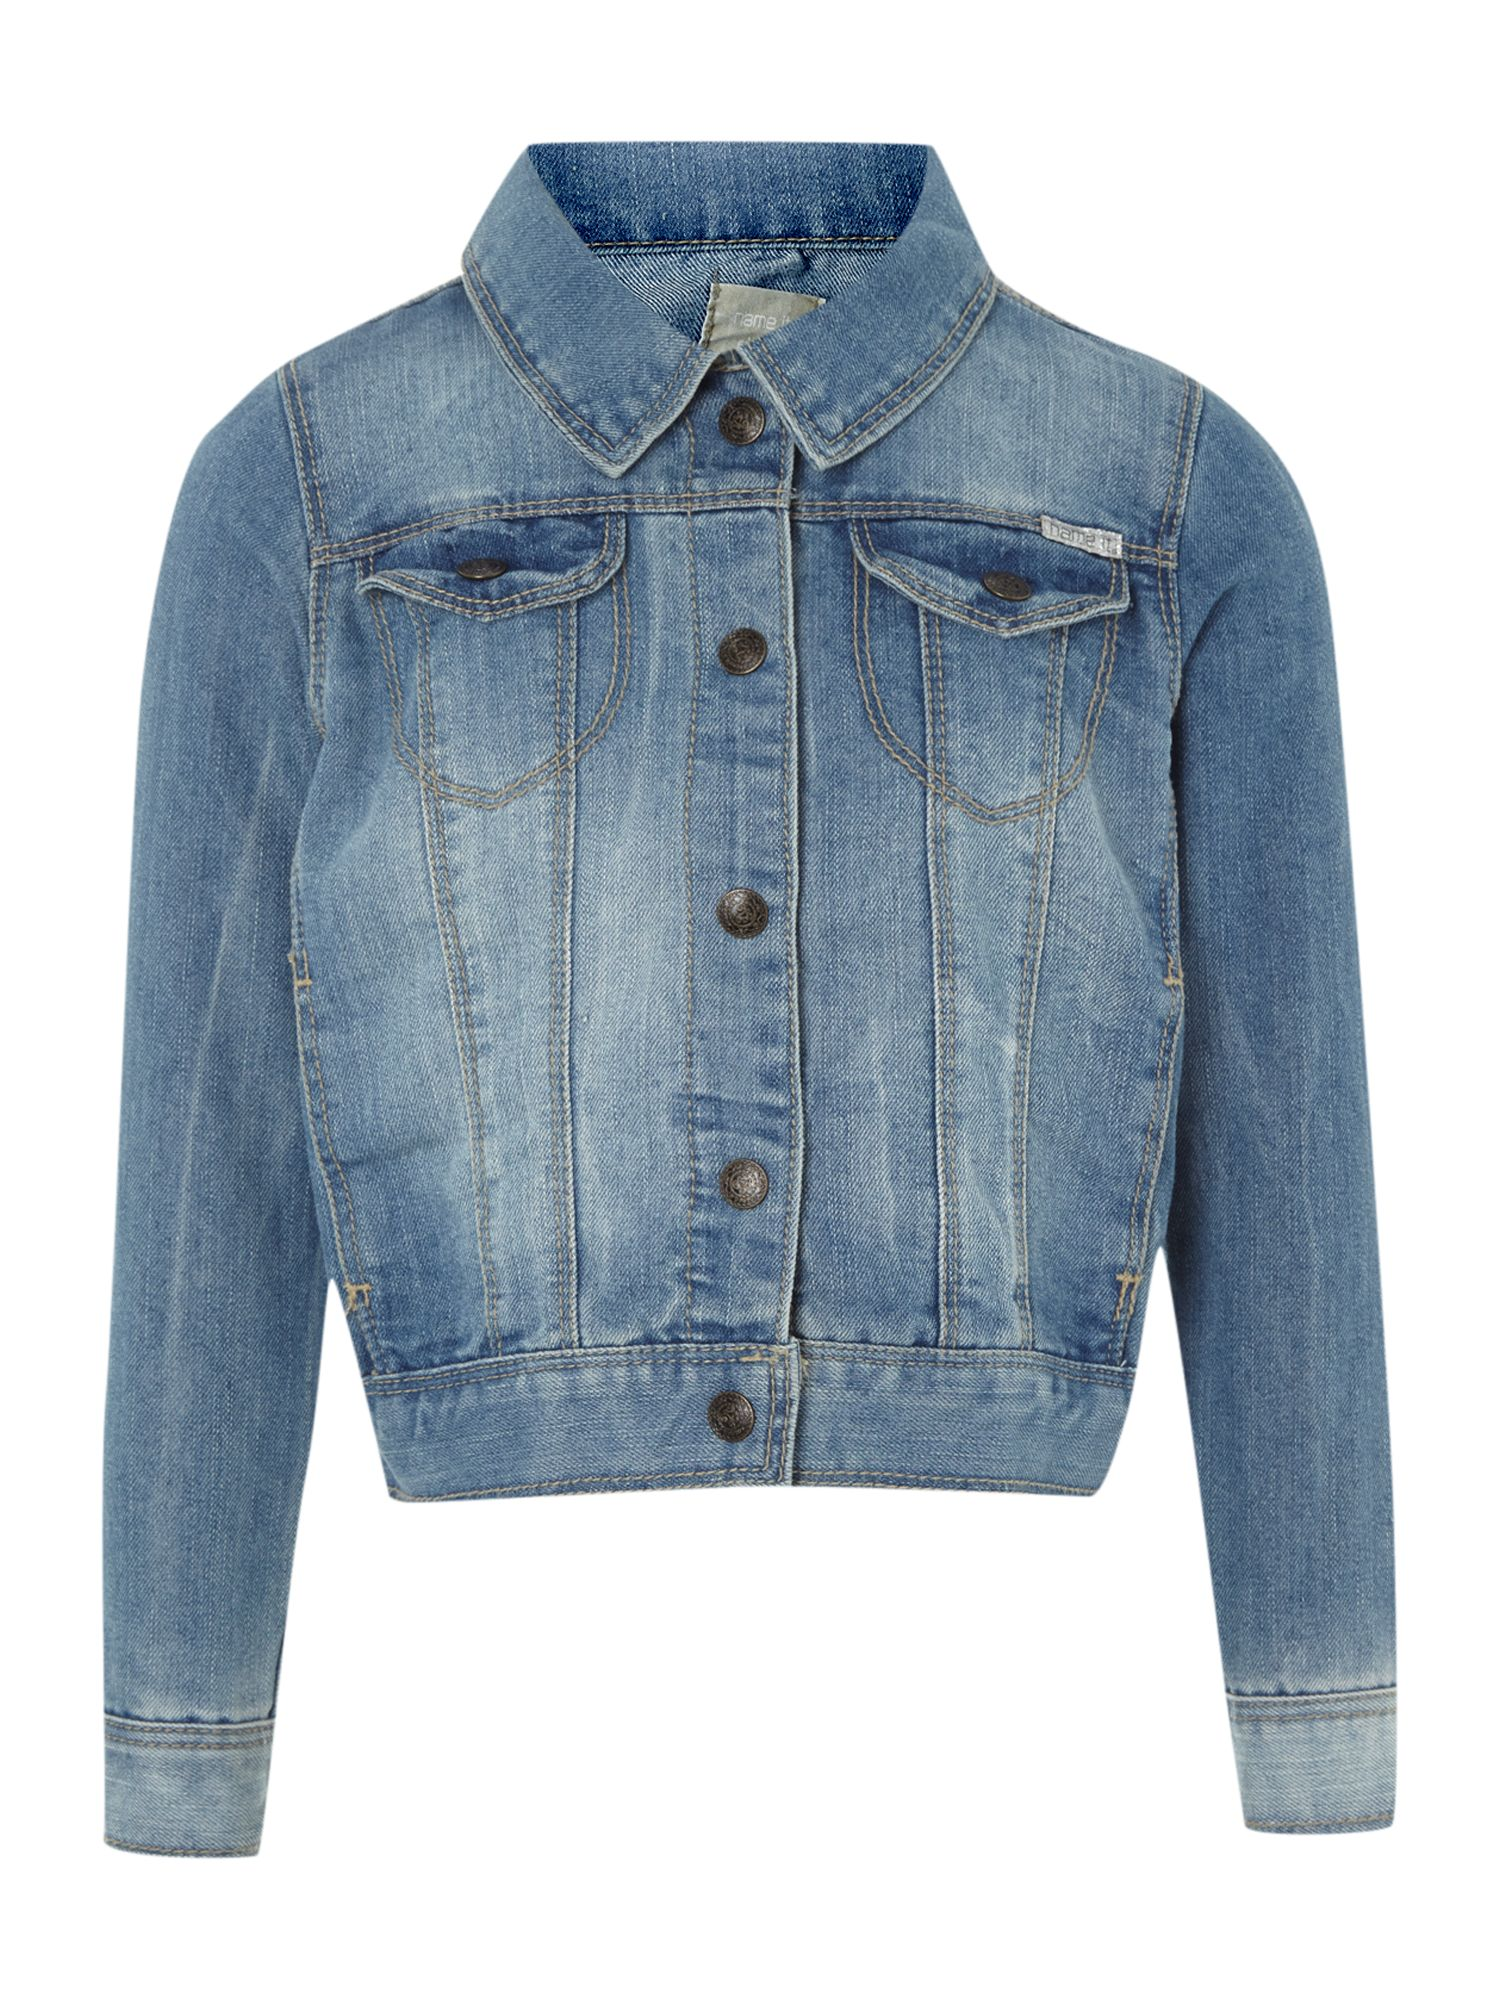 Girls light wash denim jacket